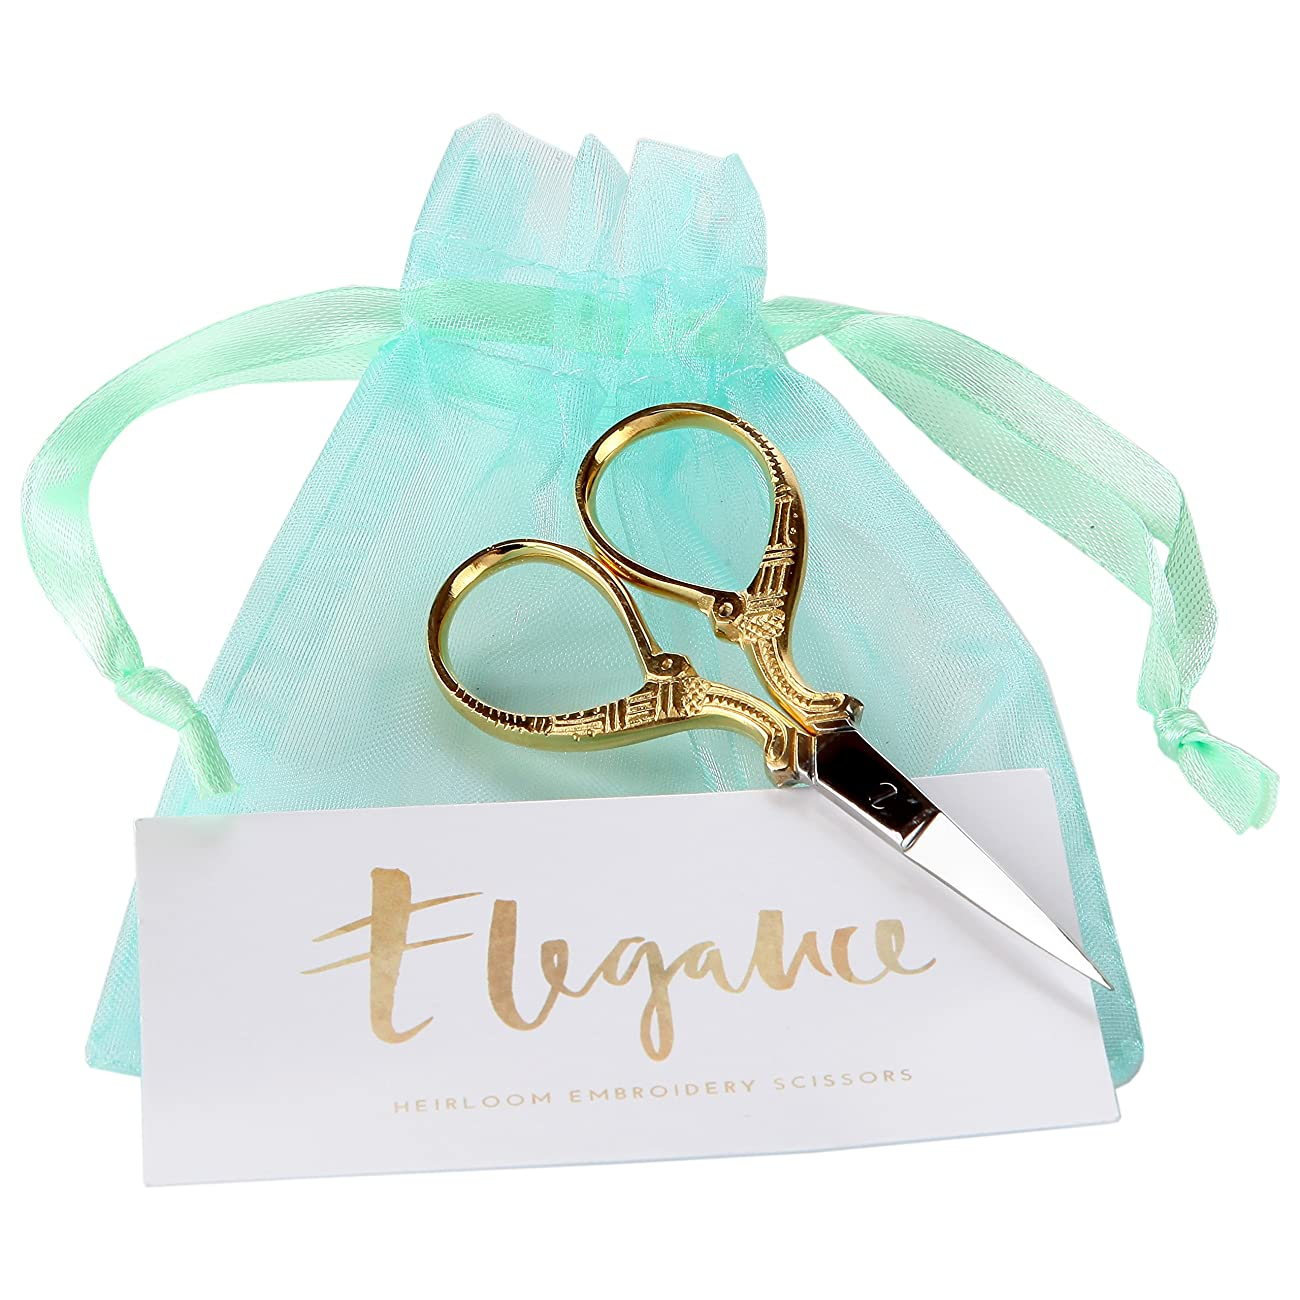 Gold Embroidery Scissors With Organza Gift Bag - for Cross Stitch Sewing Needlepoint Crafts- Lovely for Office Desk or Stationary Tasks - European Gold 1